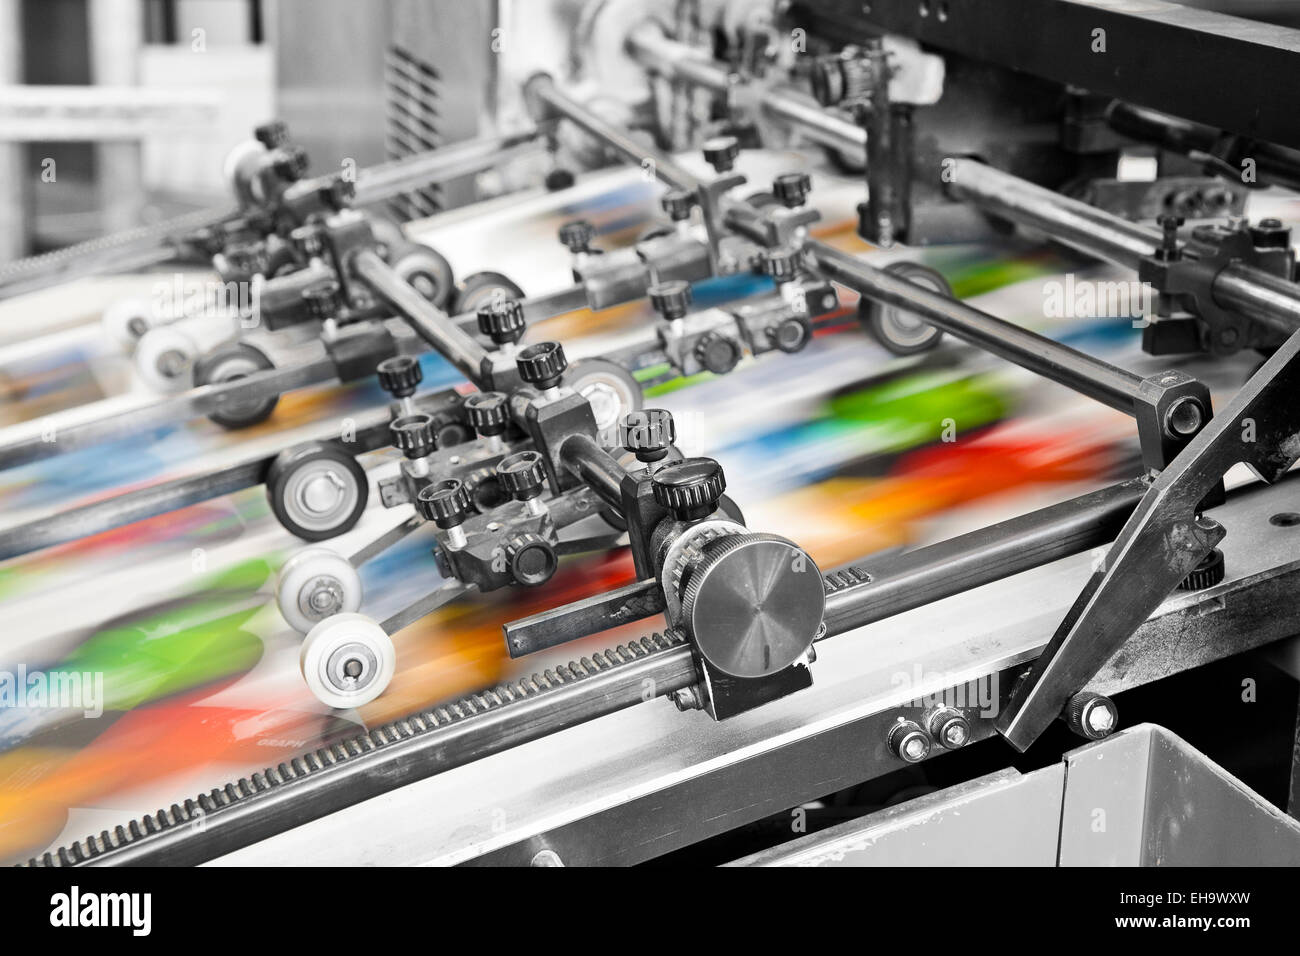 Close up of an offset printing machine during production - Stock Image